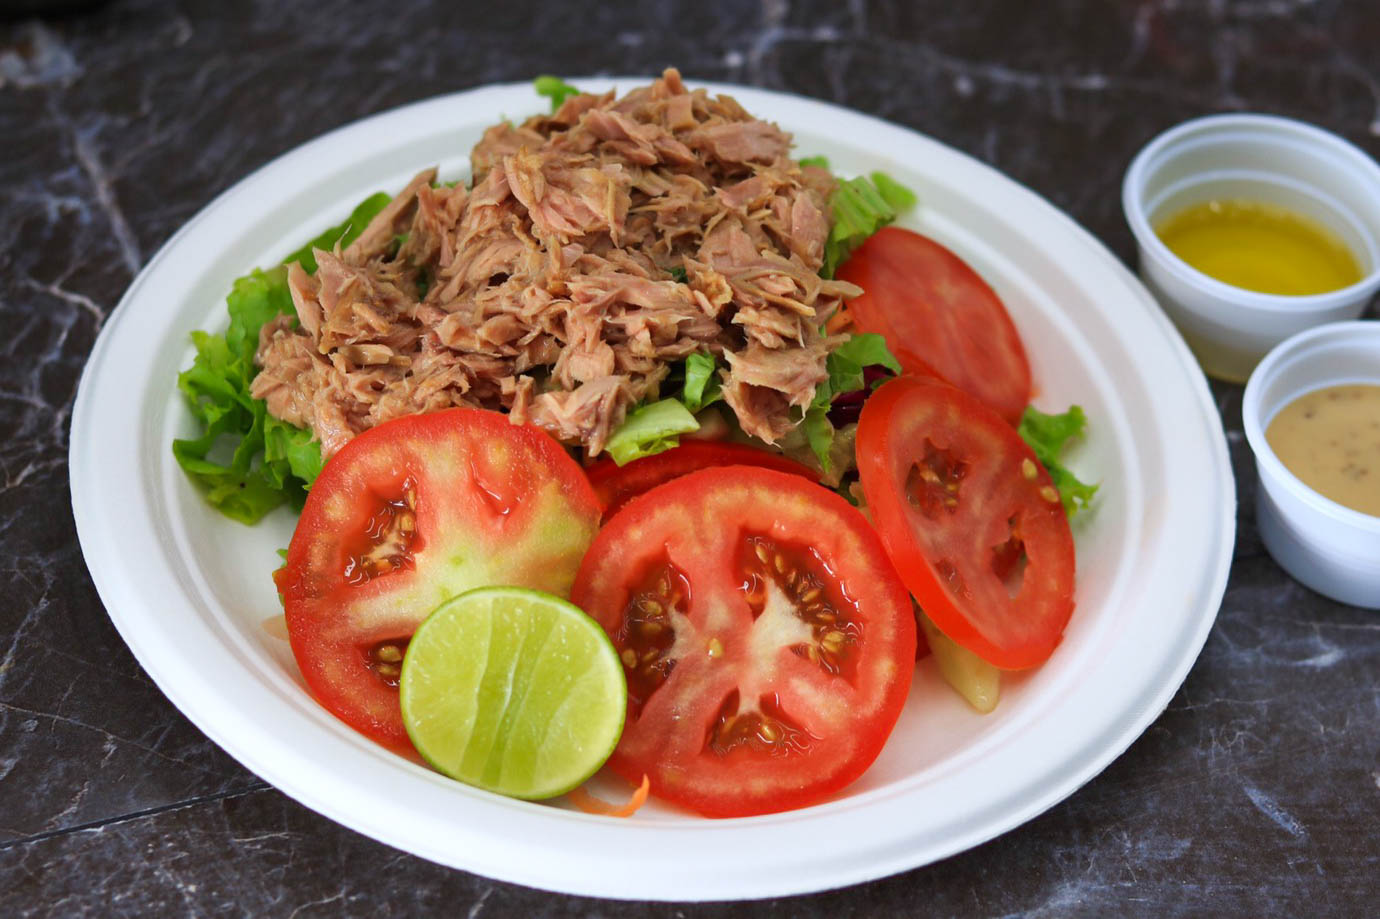 Tuna Salad Plate with french fries or rice